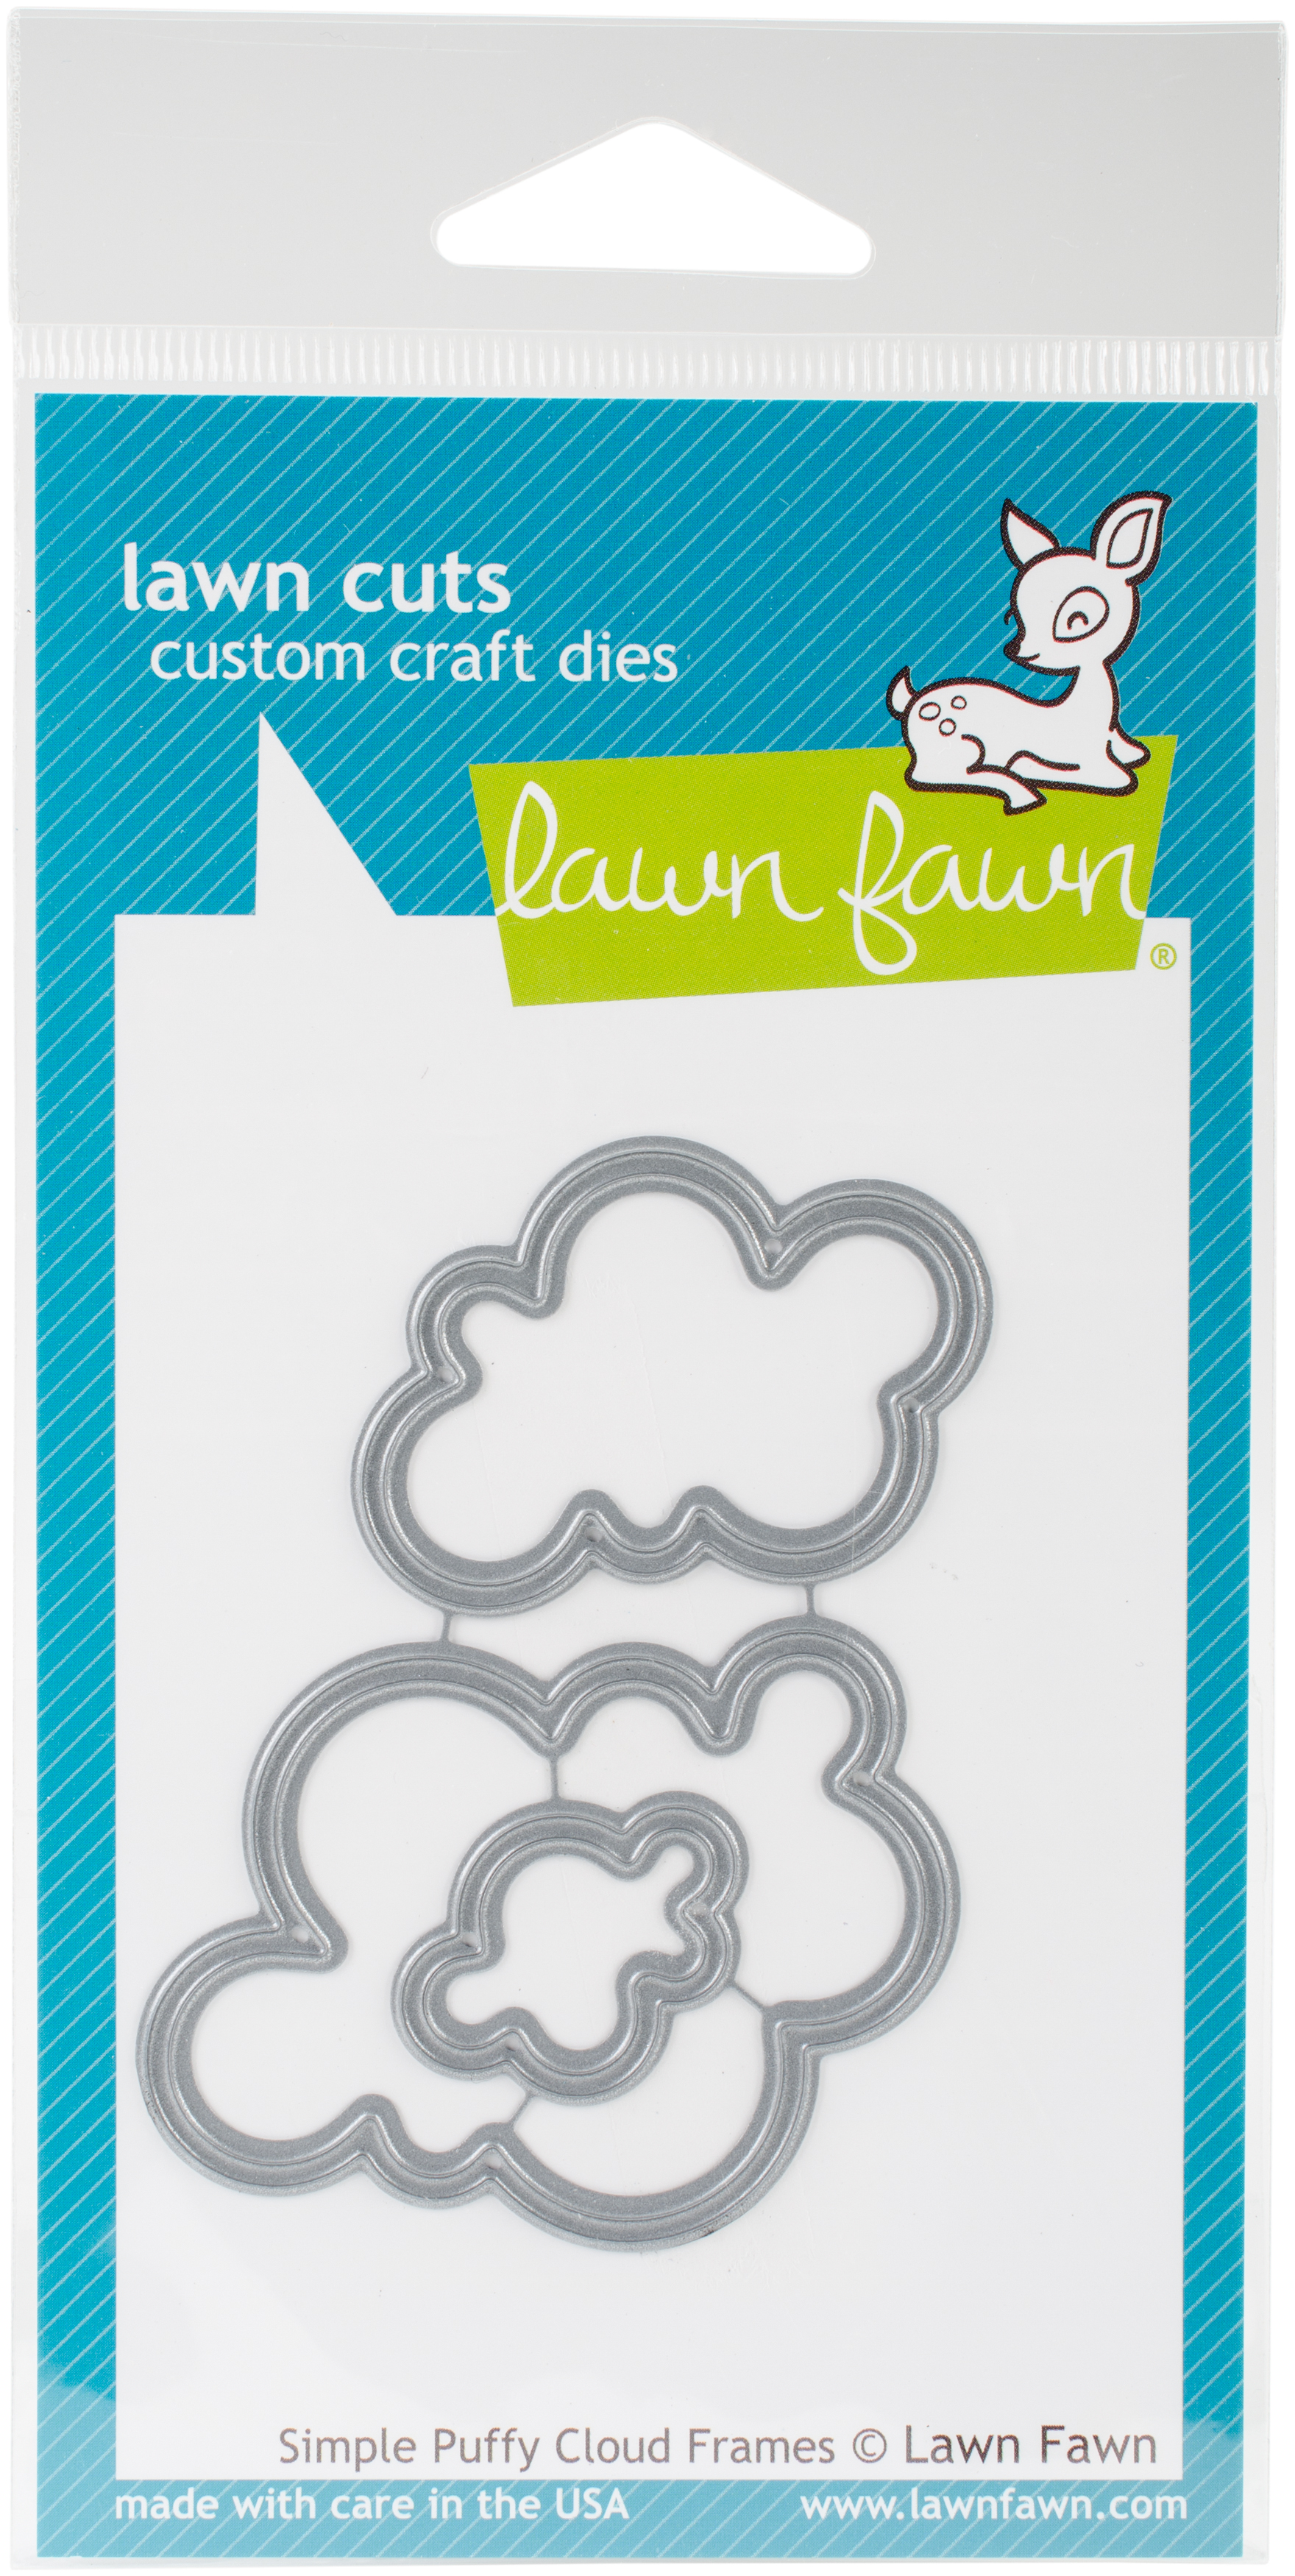 Lawn Cuts Custom Craft Die-Simple Puffy Cloud Frames